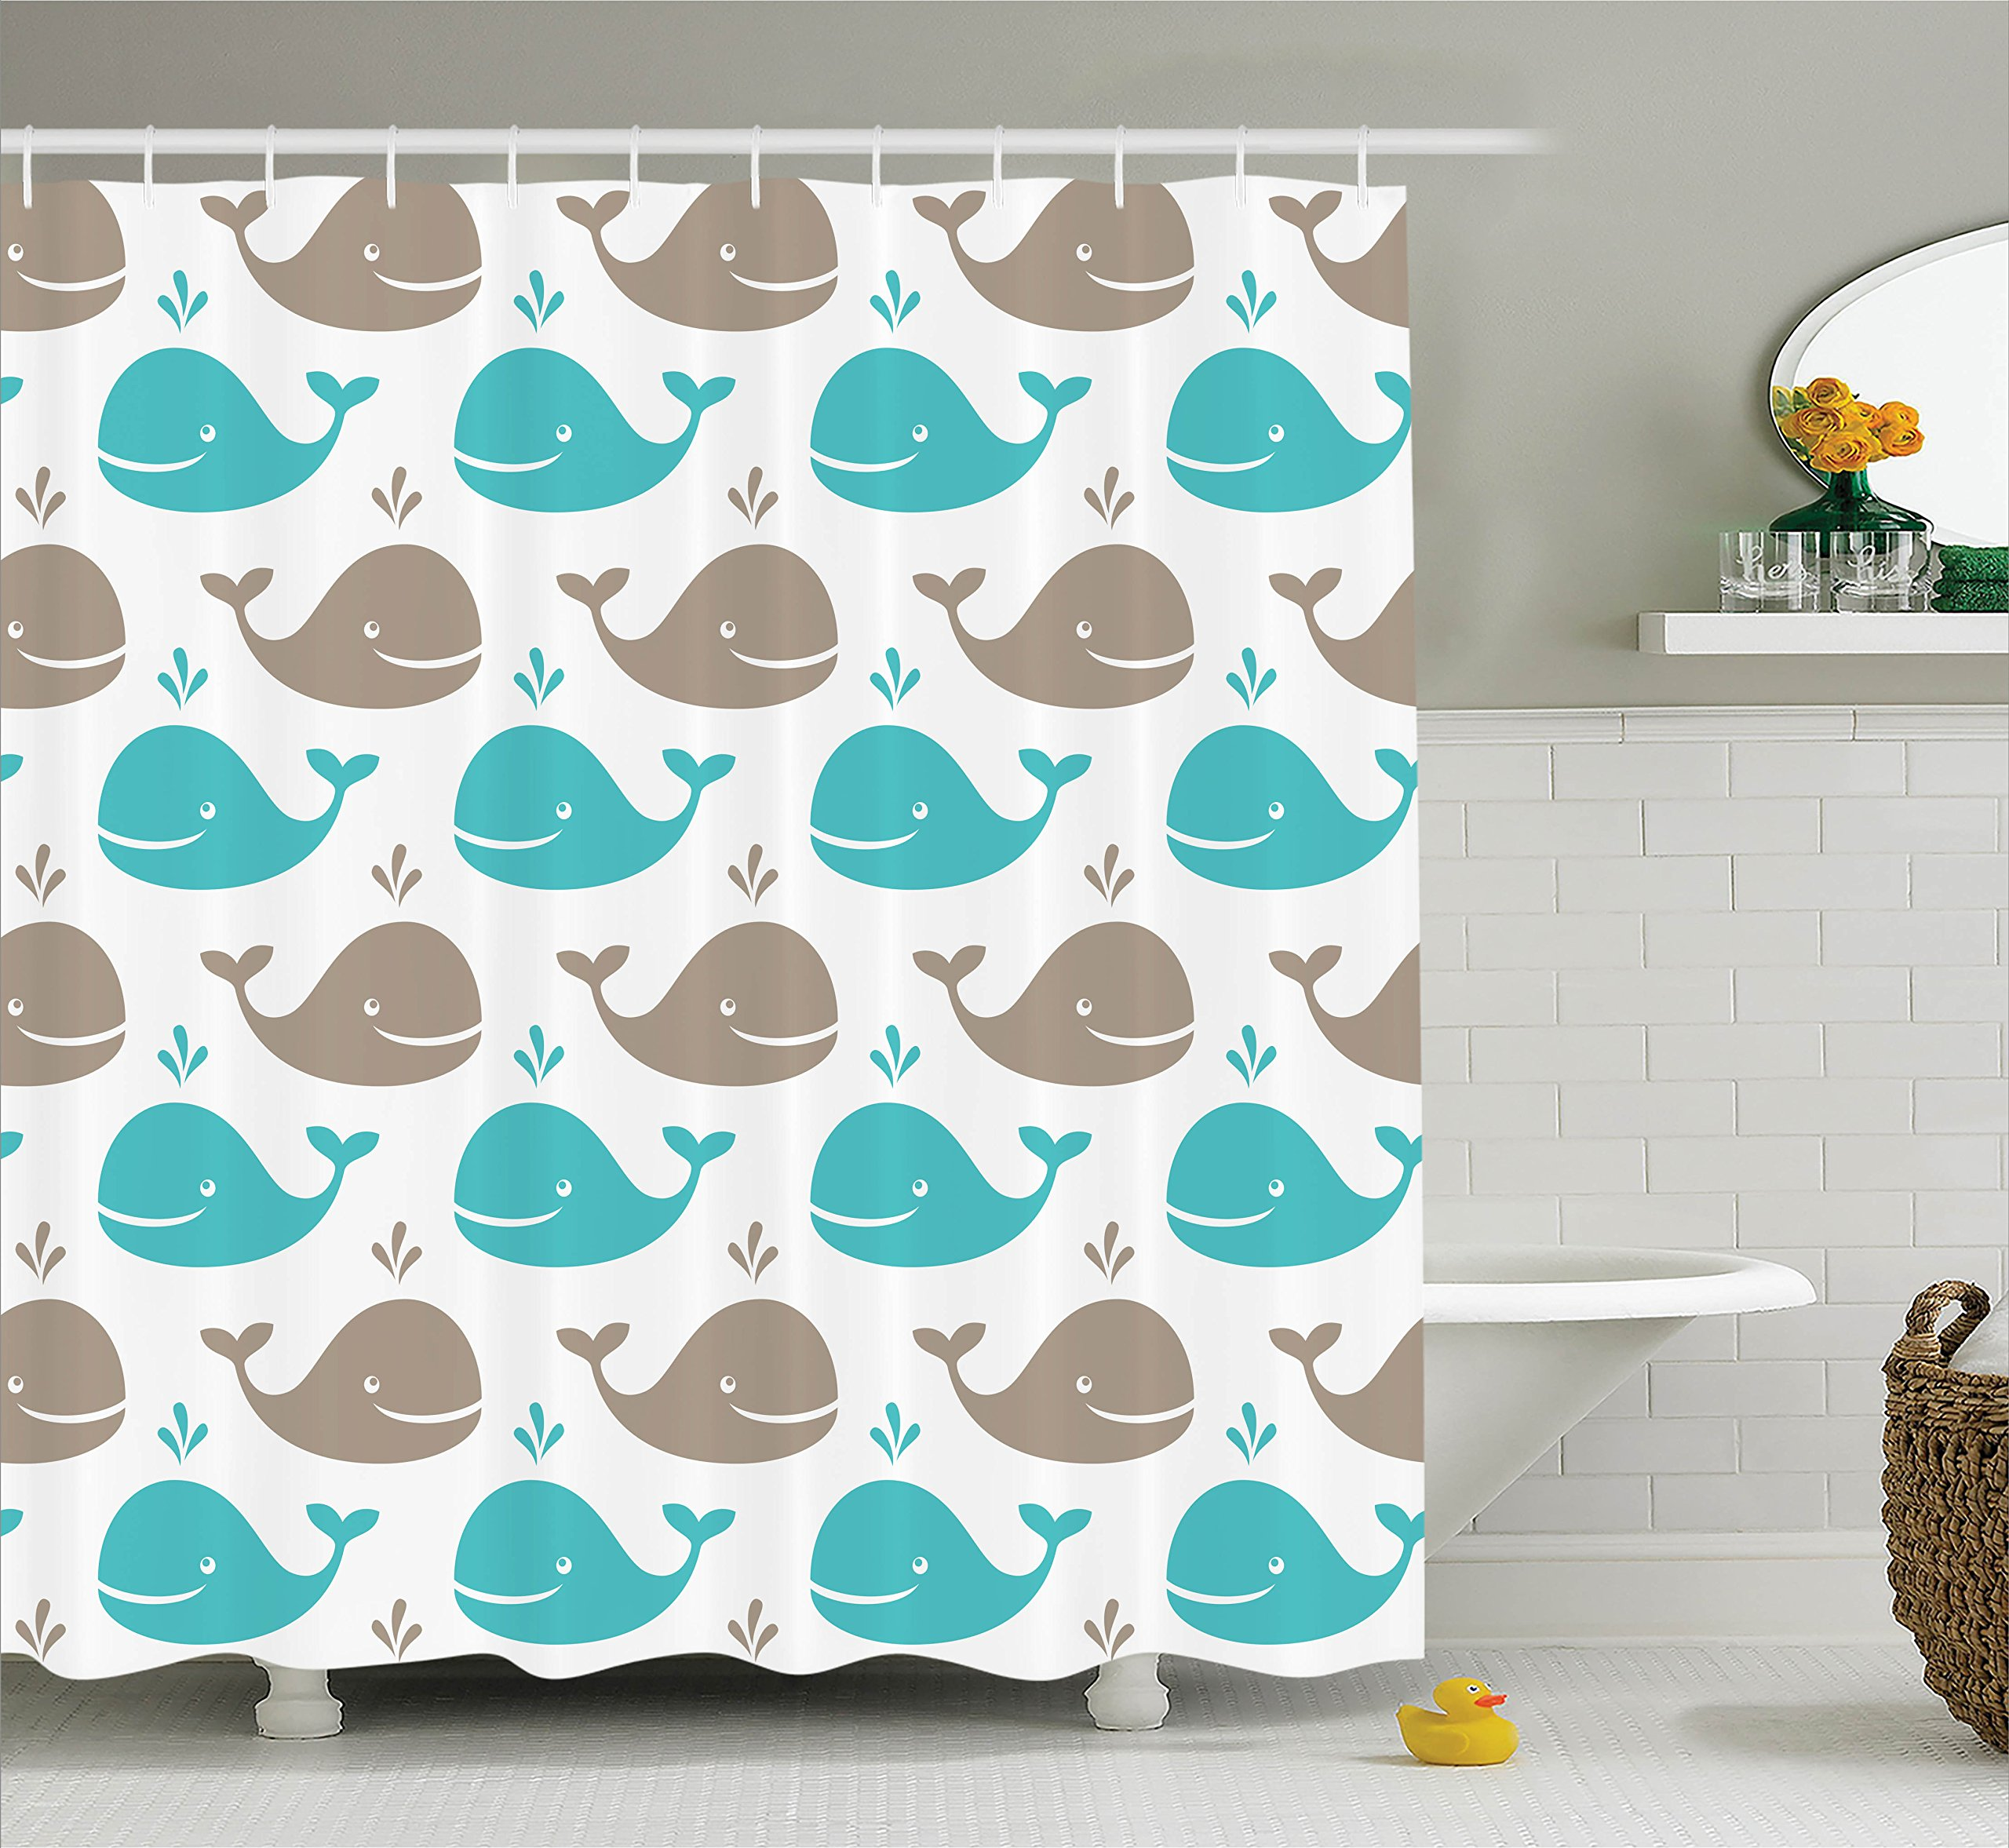 Ambesonne Sea Animals Decor Shower Curtain Set, Pattern with Smiling Whale Cartoon Repeated Design Children Illustration, Bathroom Accessories, 69W X 70L inches